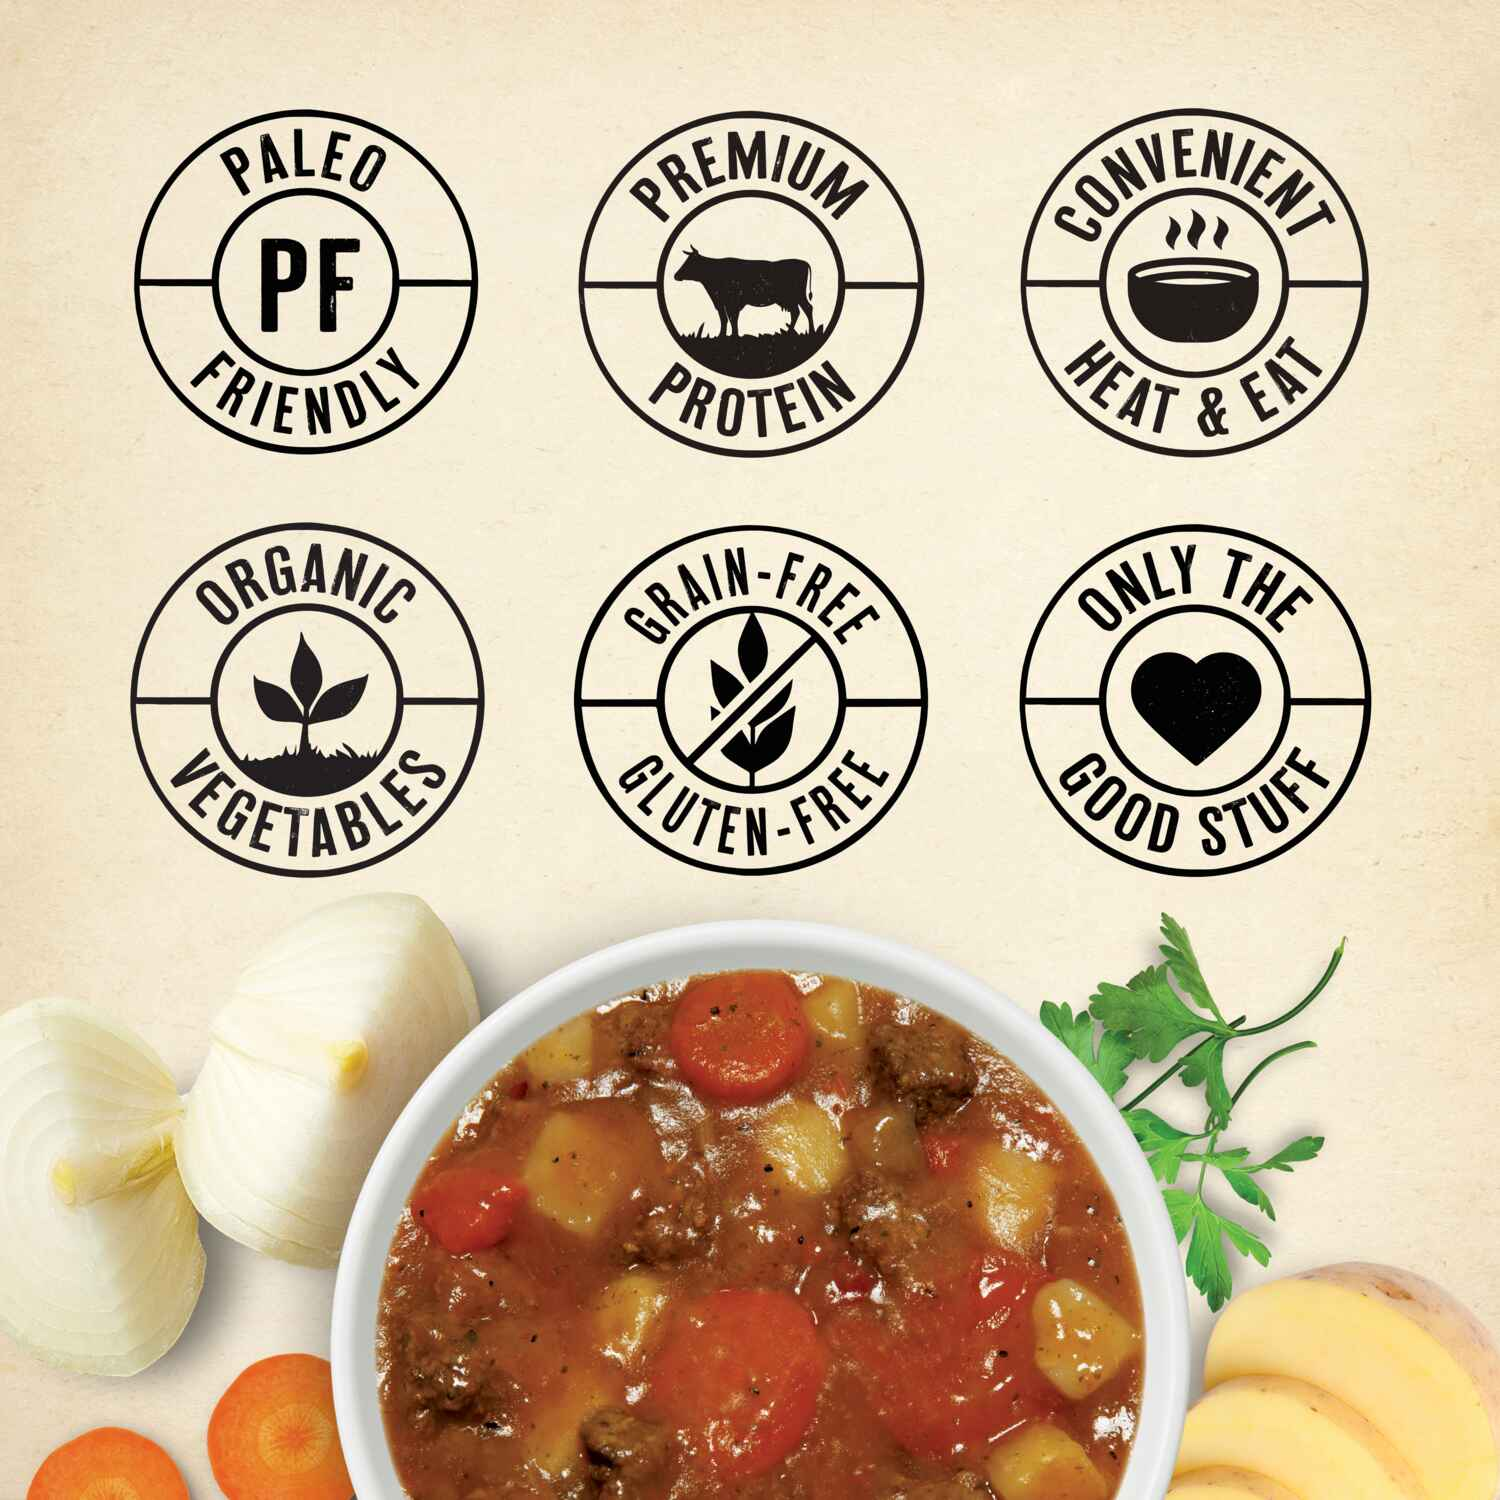 True Primal Beef & Potato Soup benefits